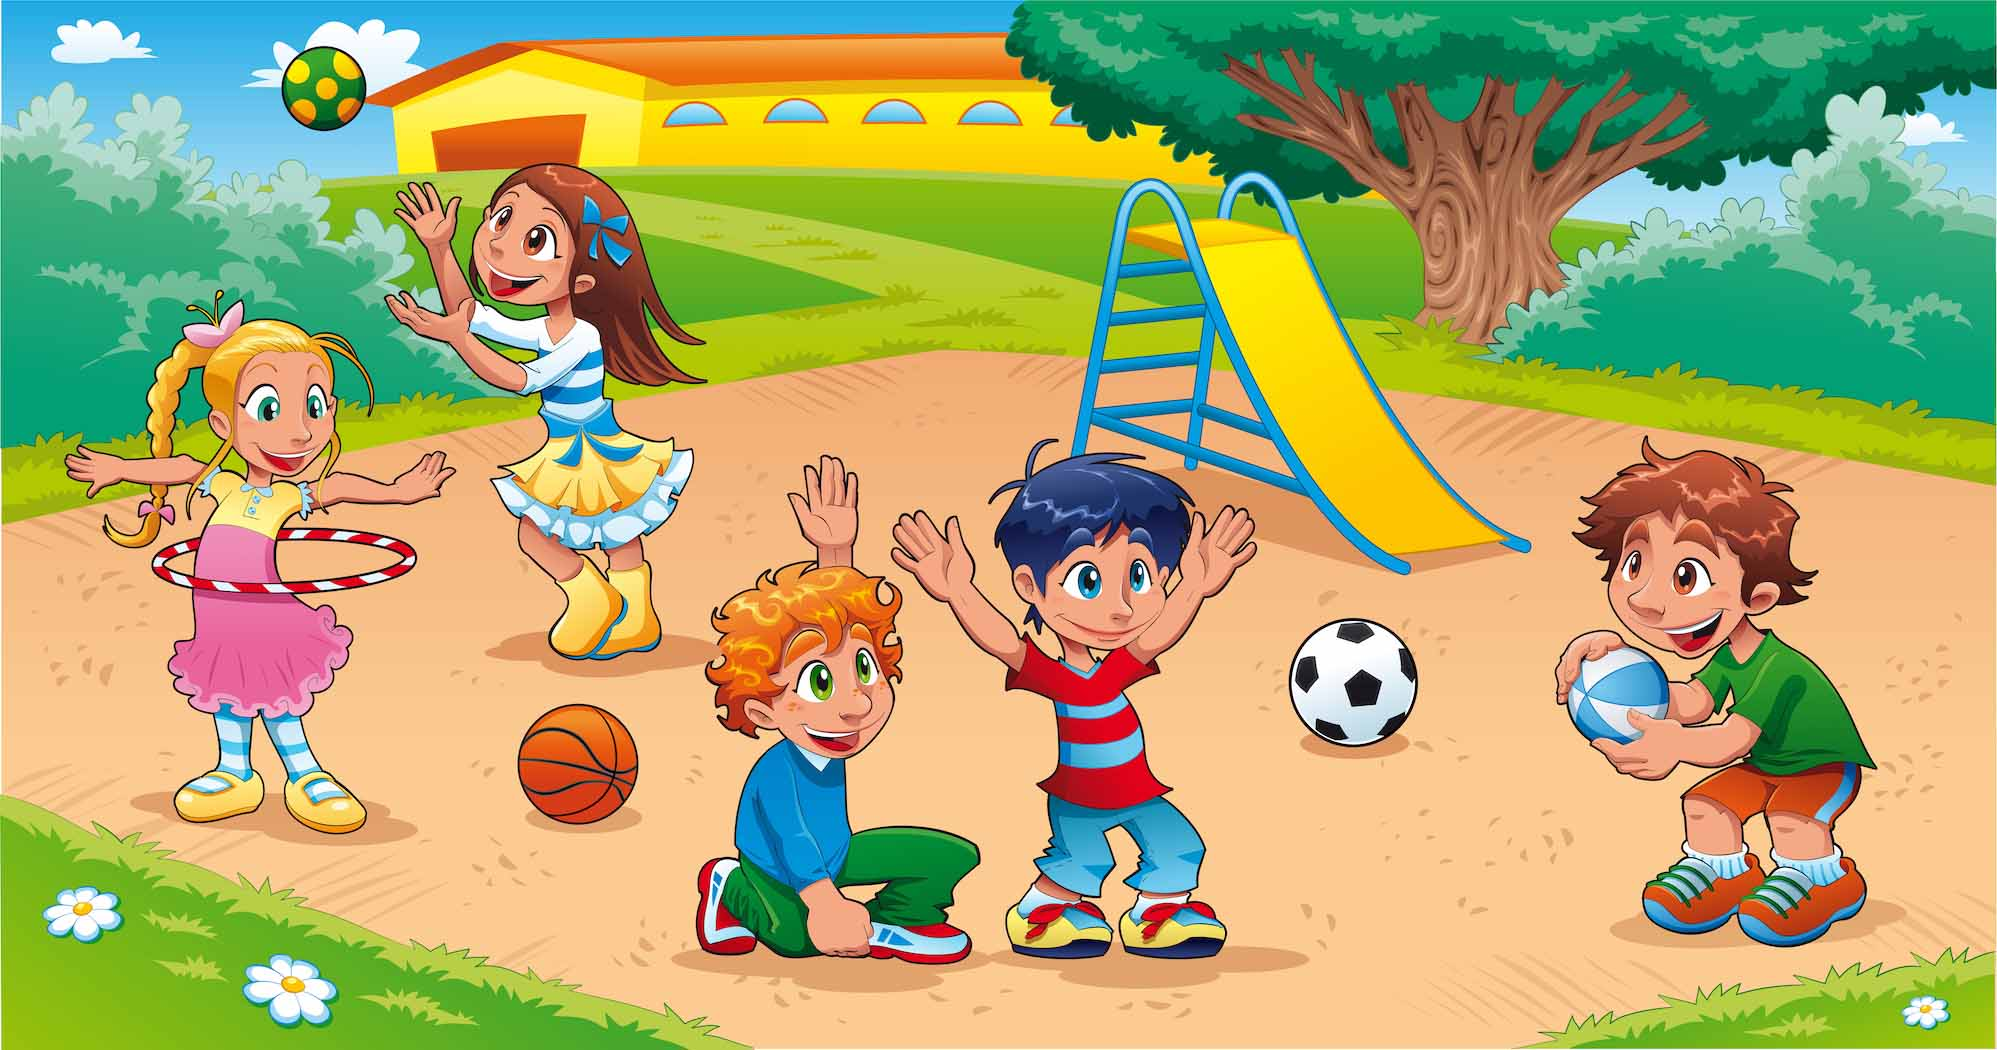 Children's book illustration of kids playing in playground